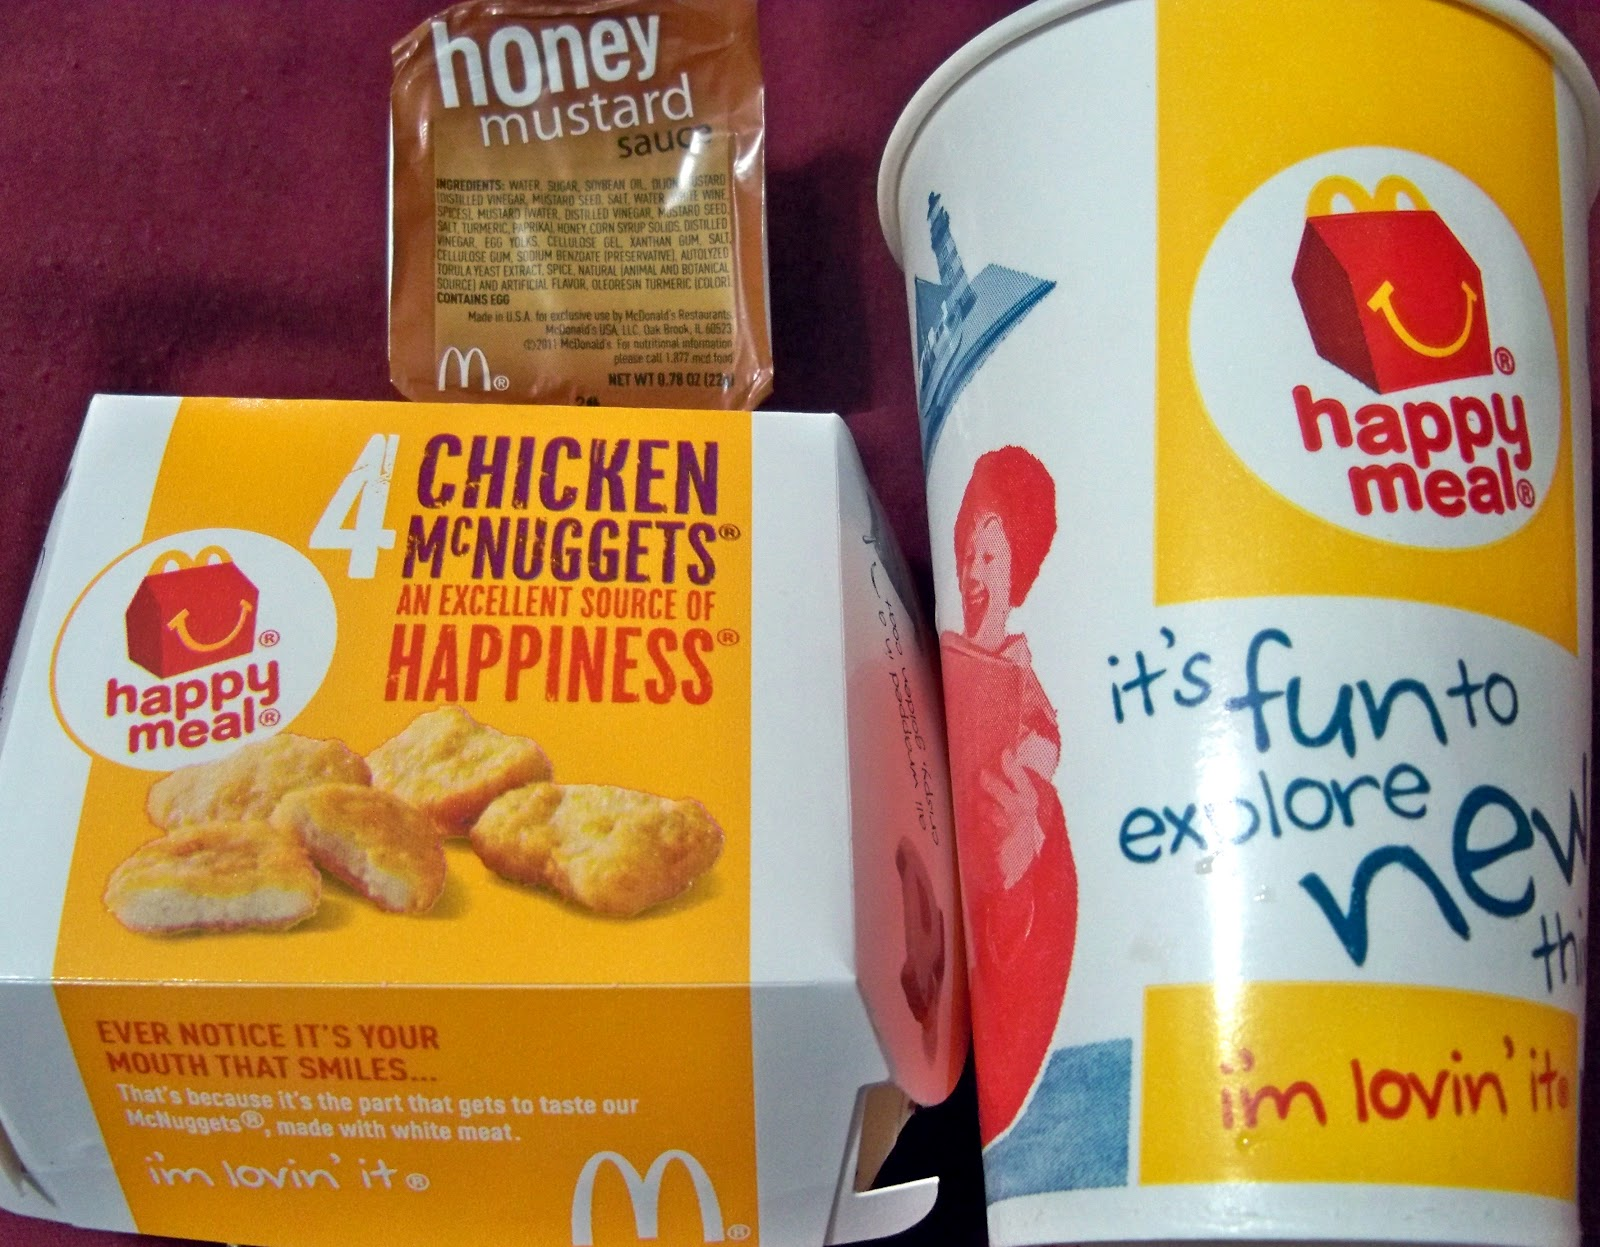 MCDONALD S HAPPY MEAL  McDonald s Fast Food Hamburger Restaurant Kid s    Mcdonalds Pizza Happy Meal